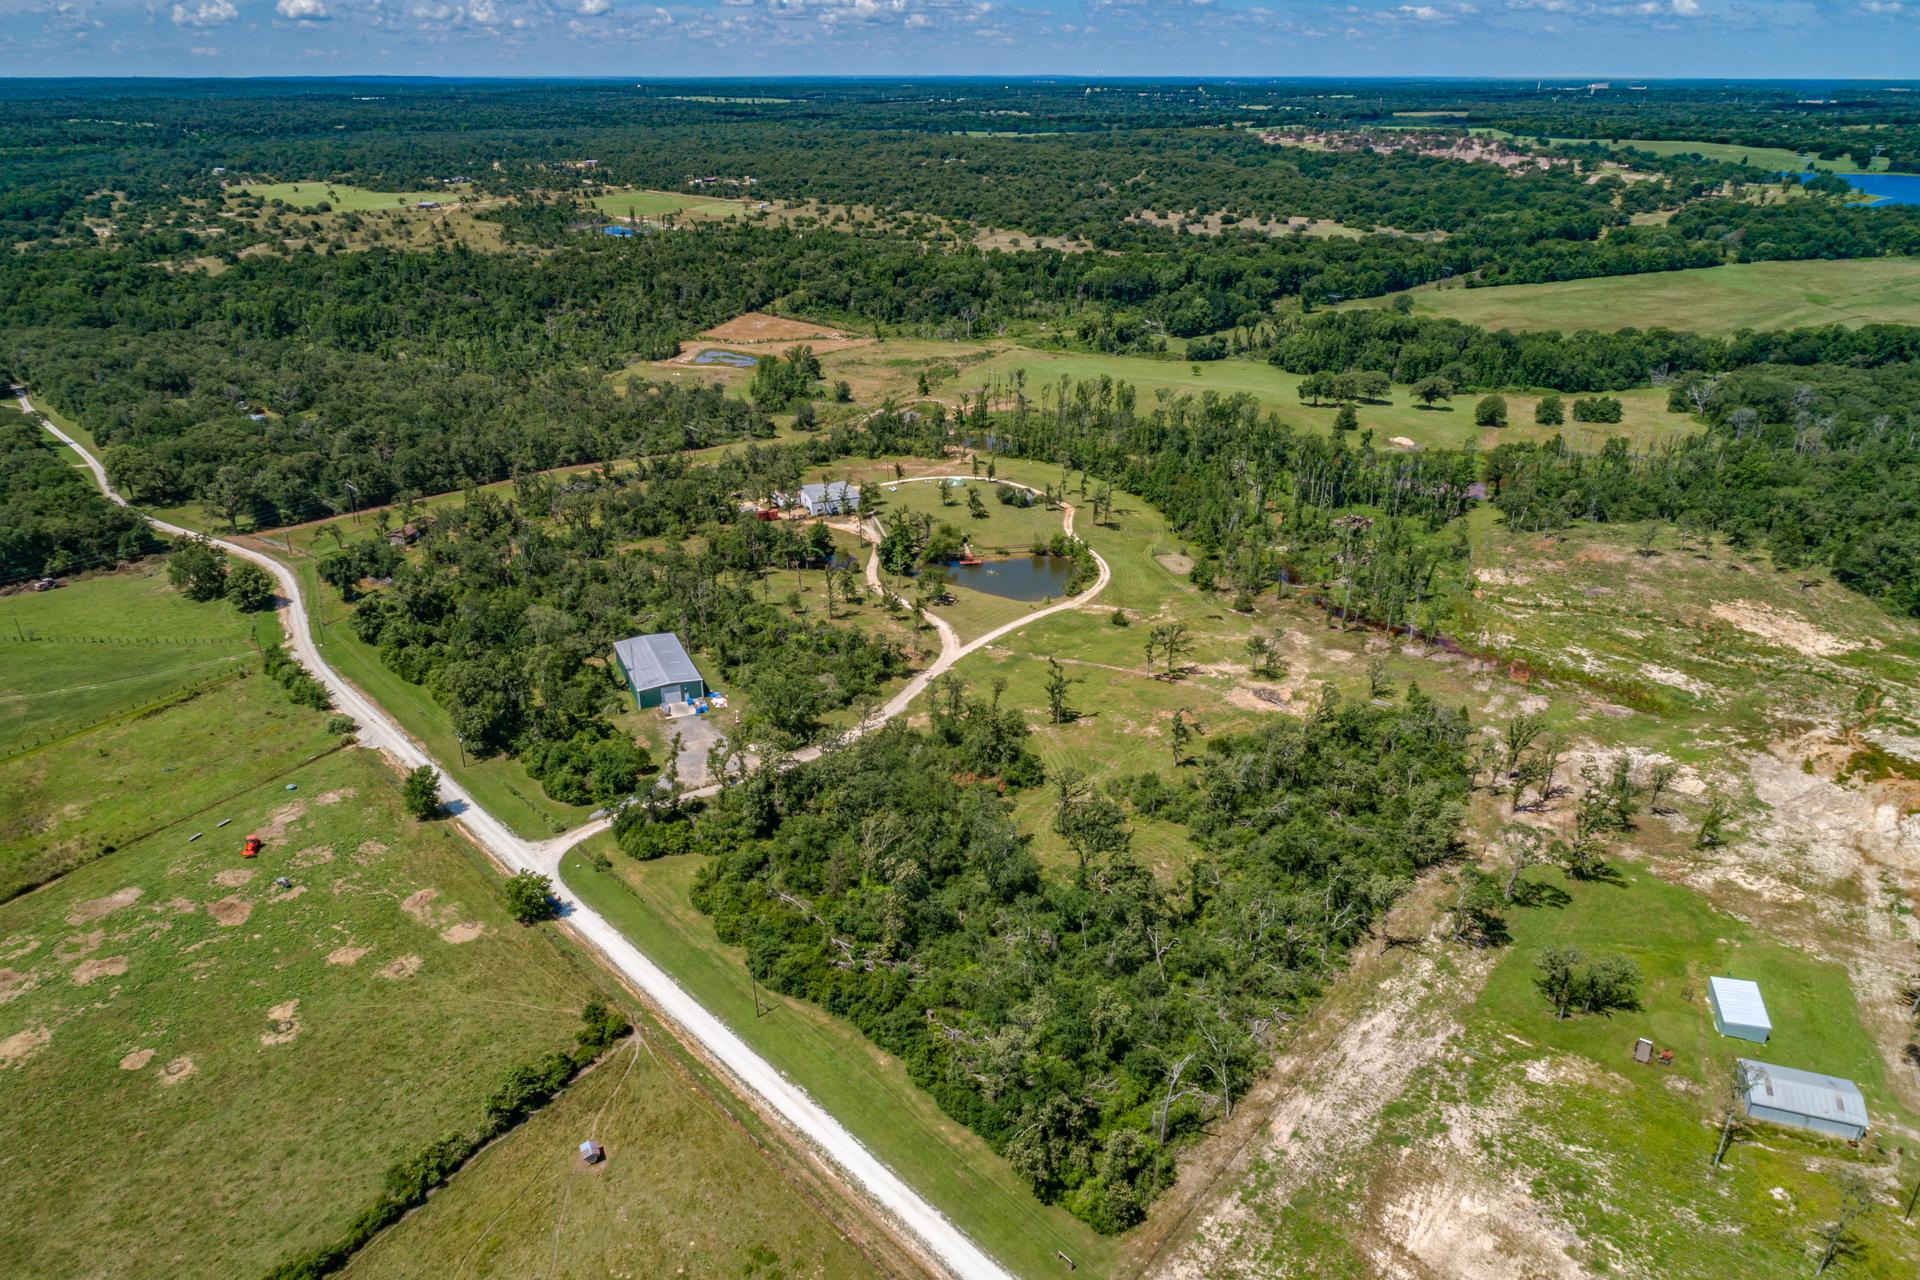 The sprawling 40-acre homesite showing the ponds, garage, warehouses, and outbuilding on the property.